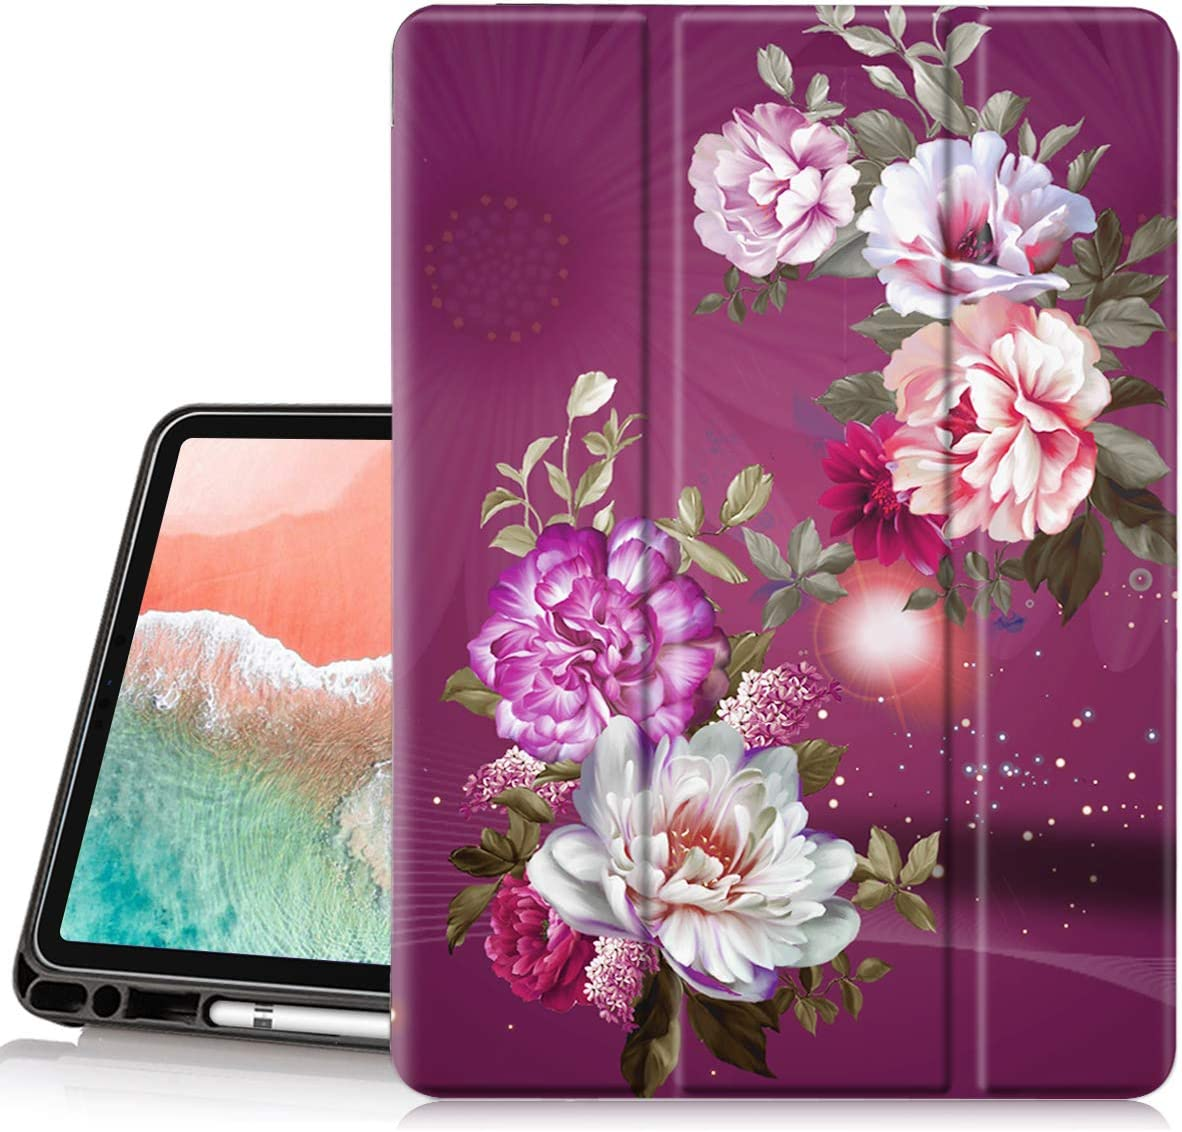 Hocase for iPad Pro New arrival 11 2021 Penc 2020 Case 10.9 Popular products with